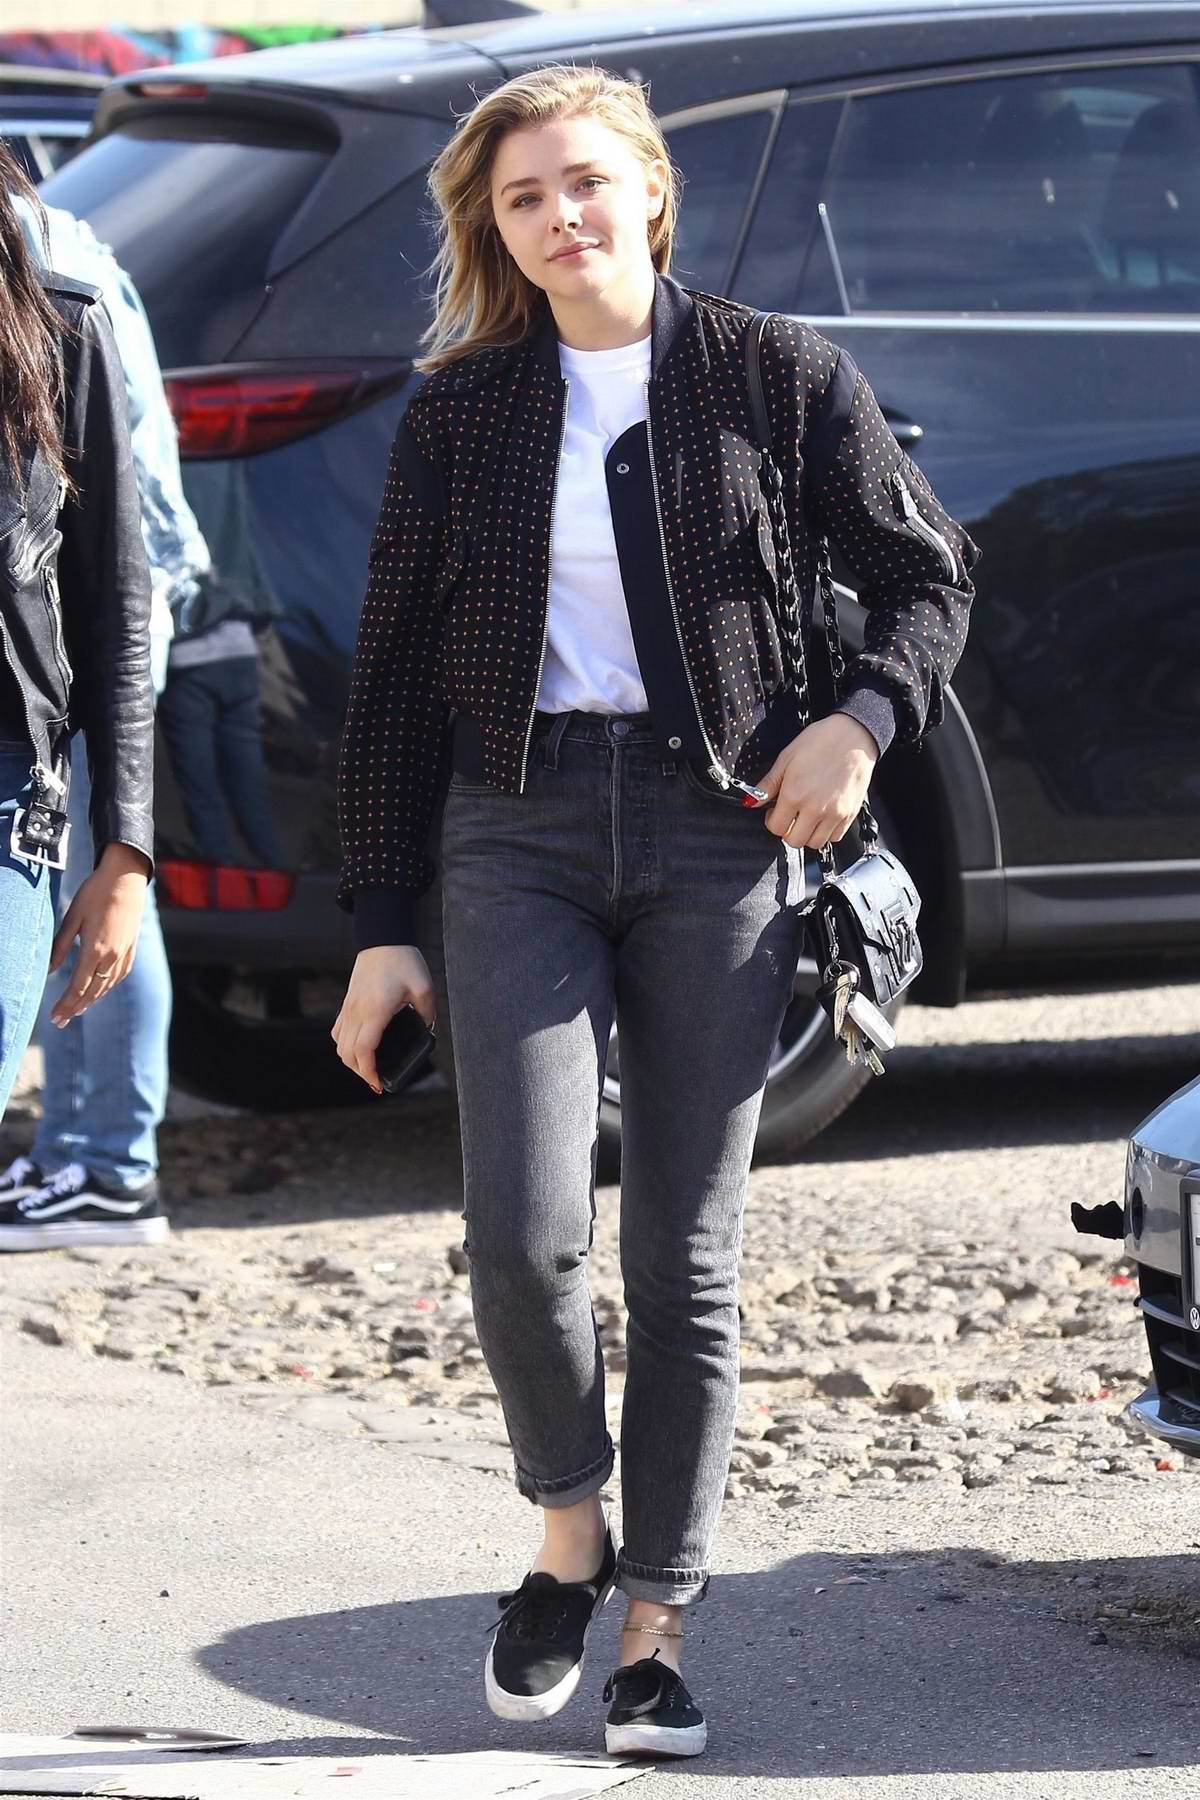 Chloe Grace Moretz out doing Christmas shopping with a friend in West Hollywood, Los Angeles